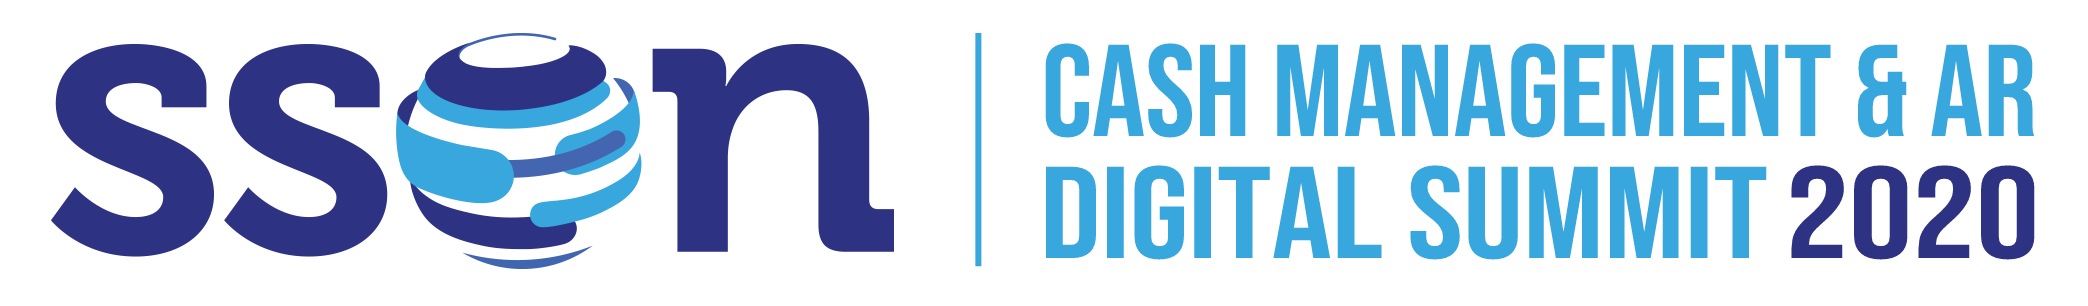 Cash Management & AR Digital Summit